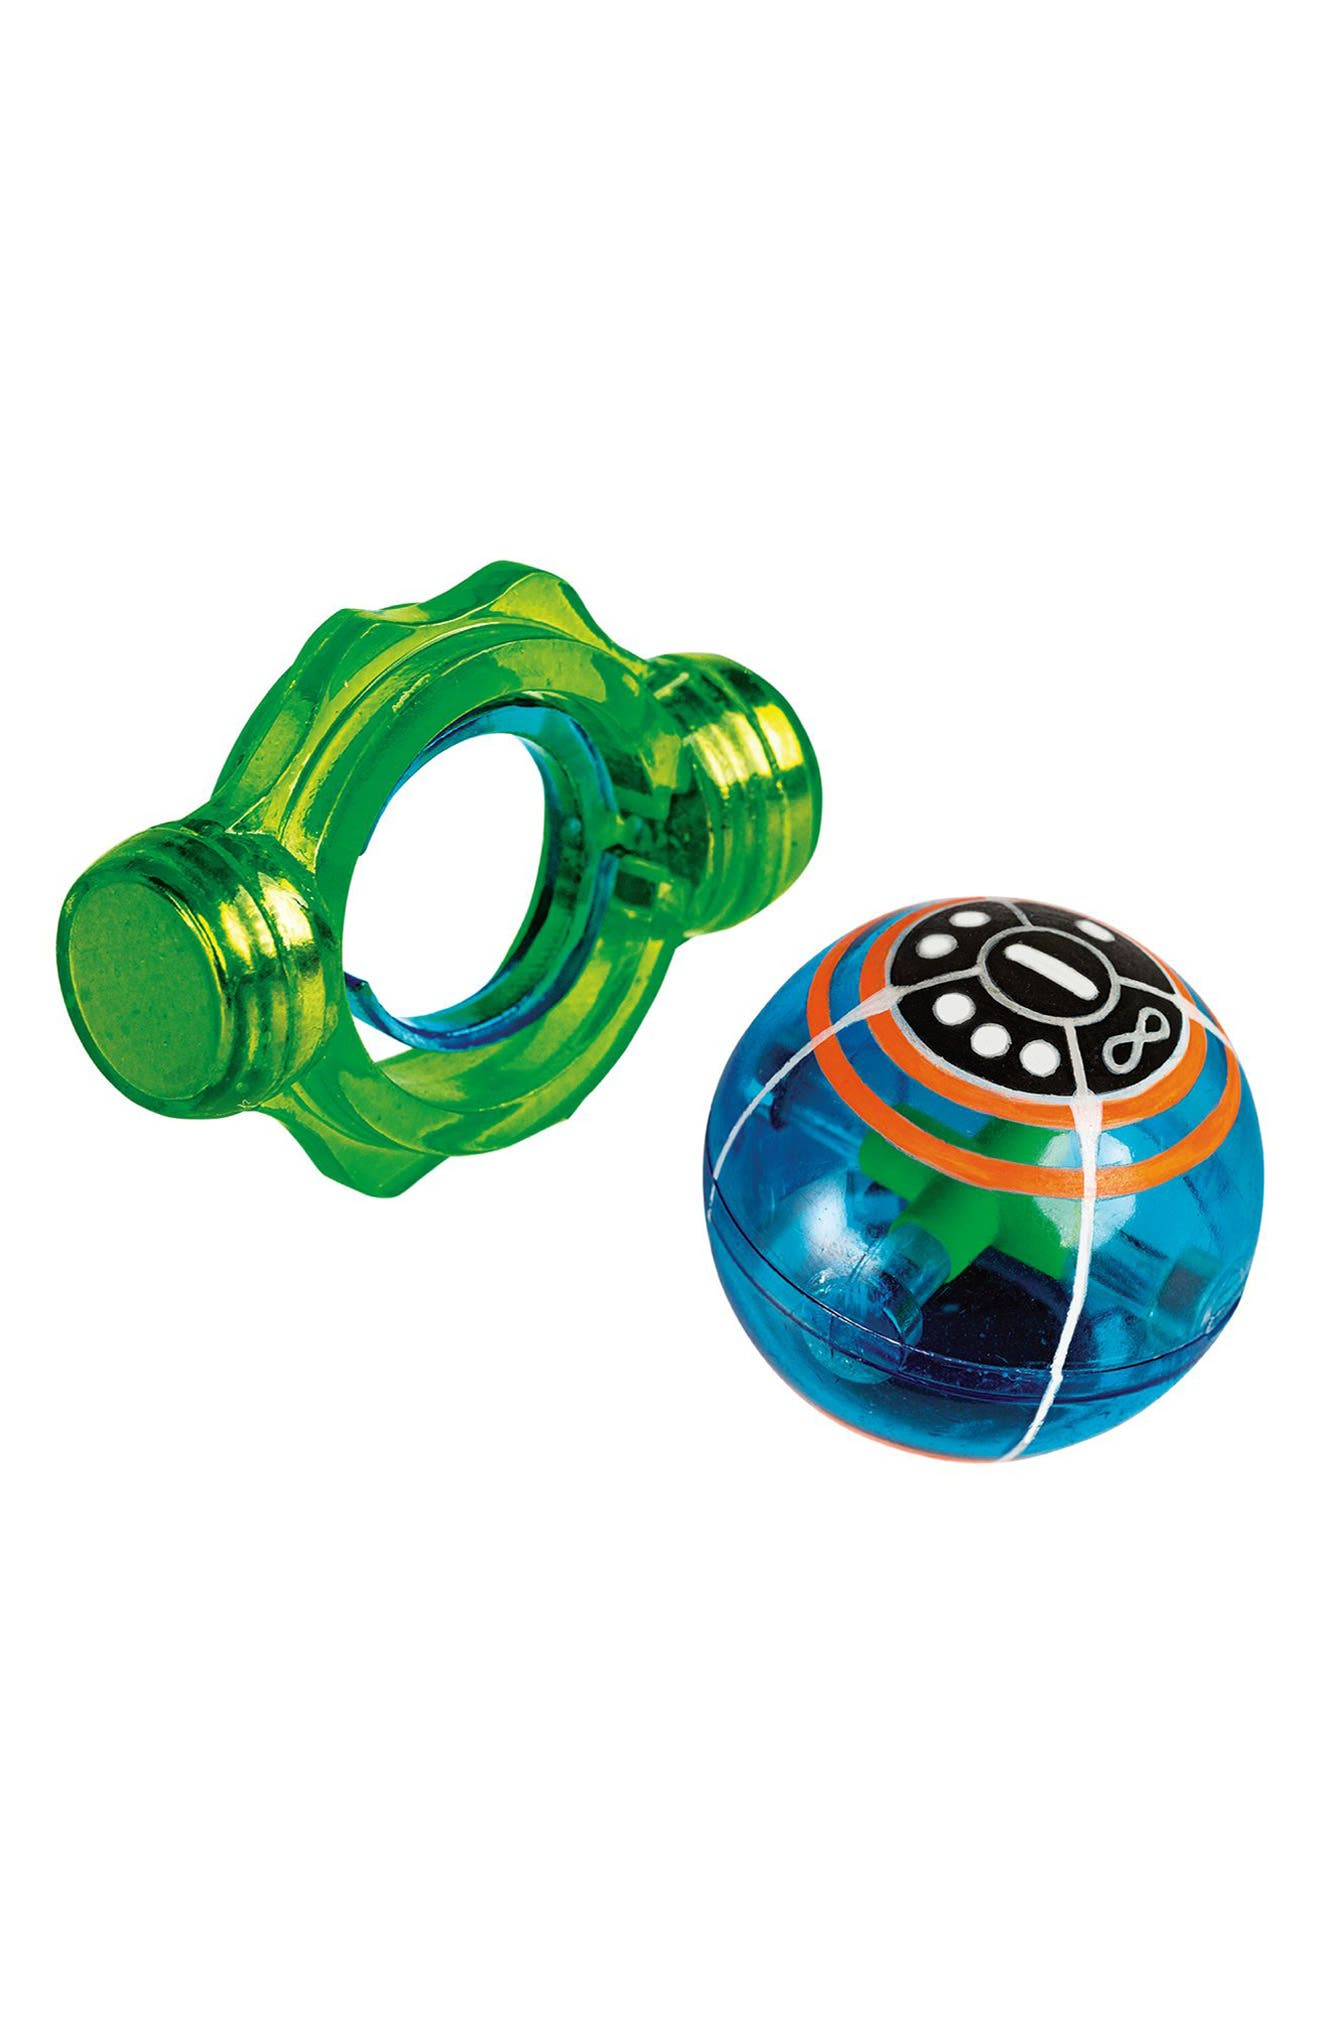 Spinos Solo 2-Piece Magnetic Spin Toy,                             Main thumbnail 1, color,                             400